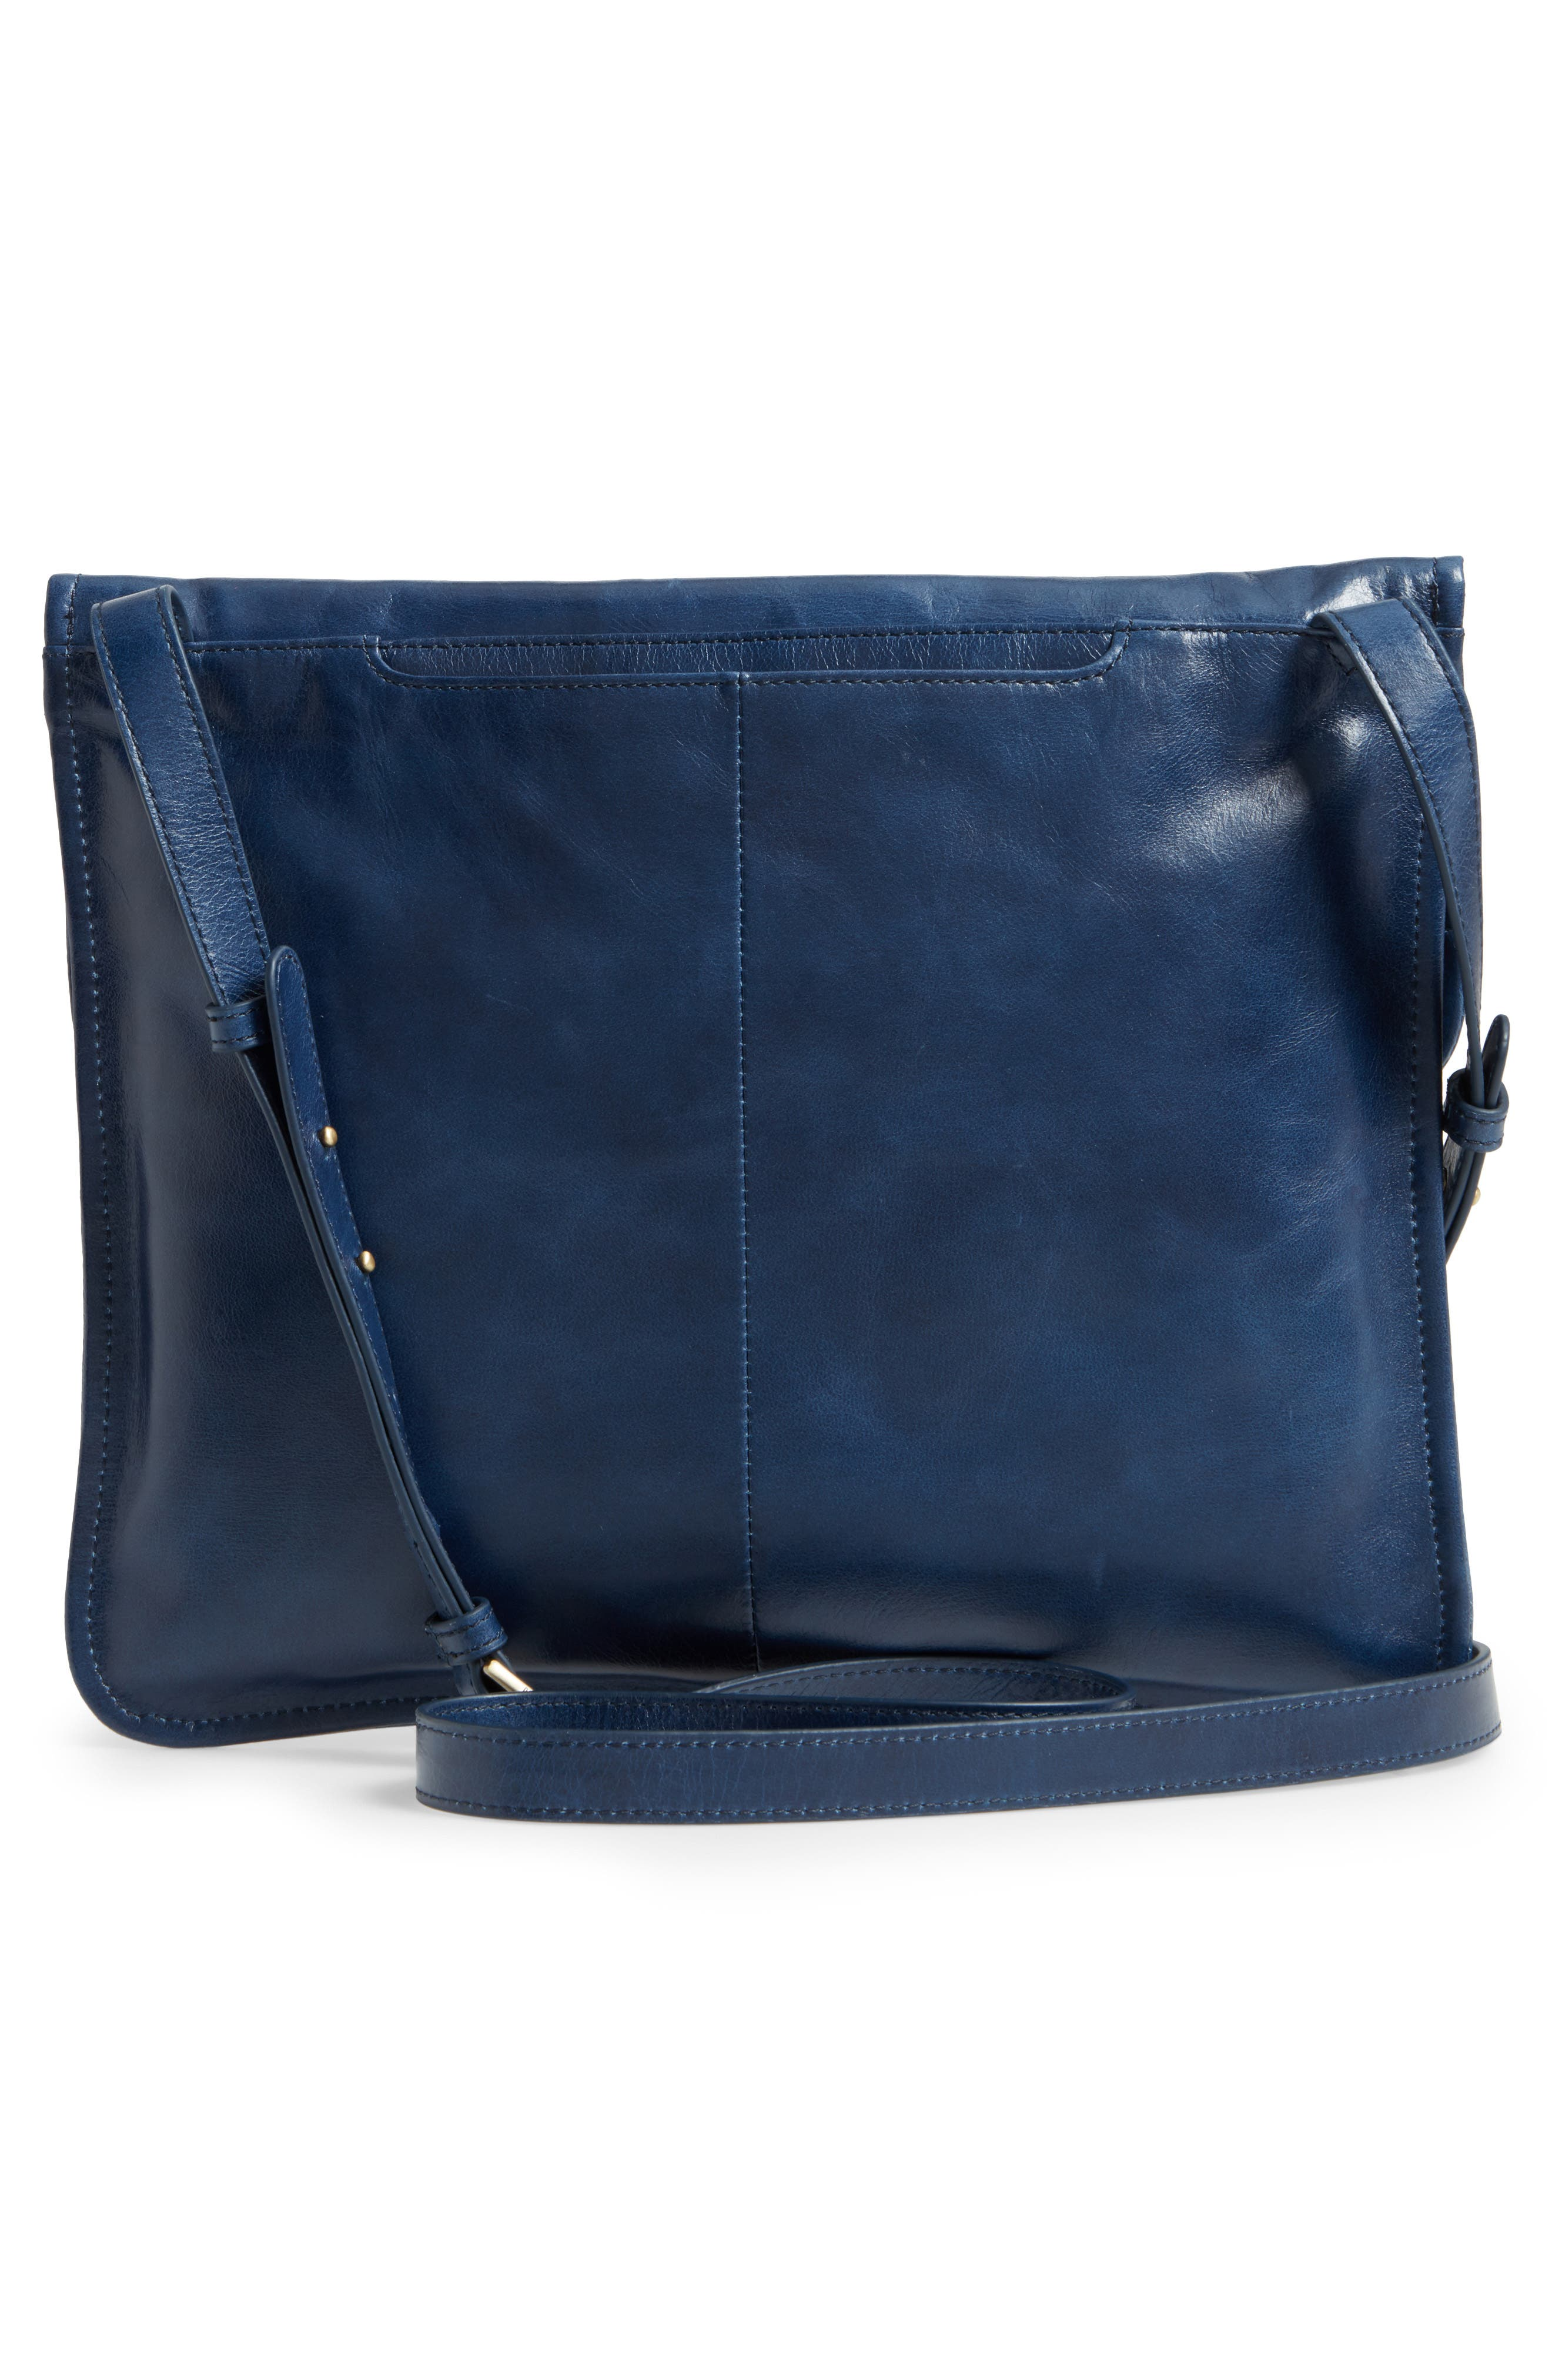 Vista Calfskin Leather Messenger Bag,                             Alternate thumbnail 12, color,